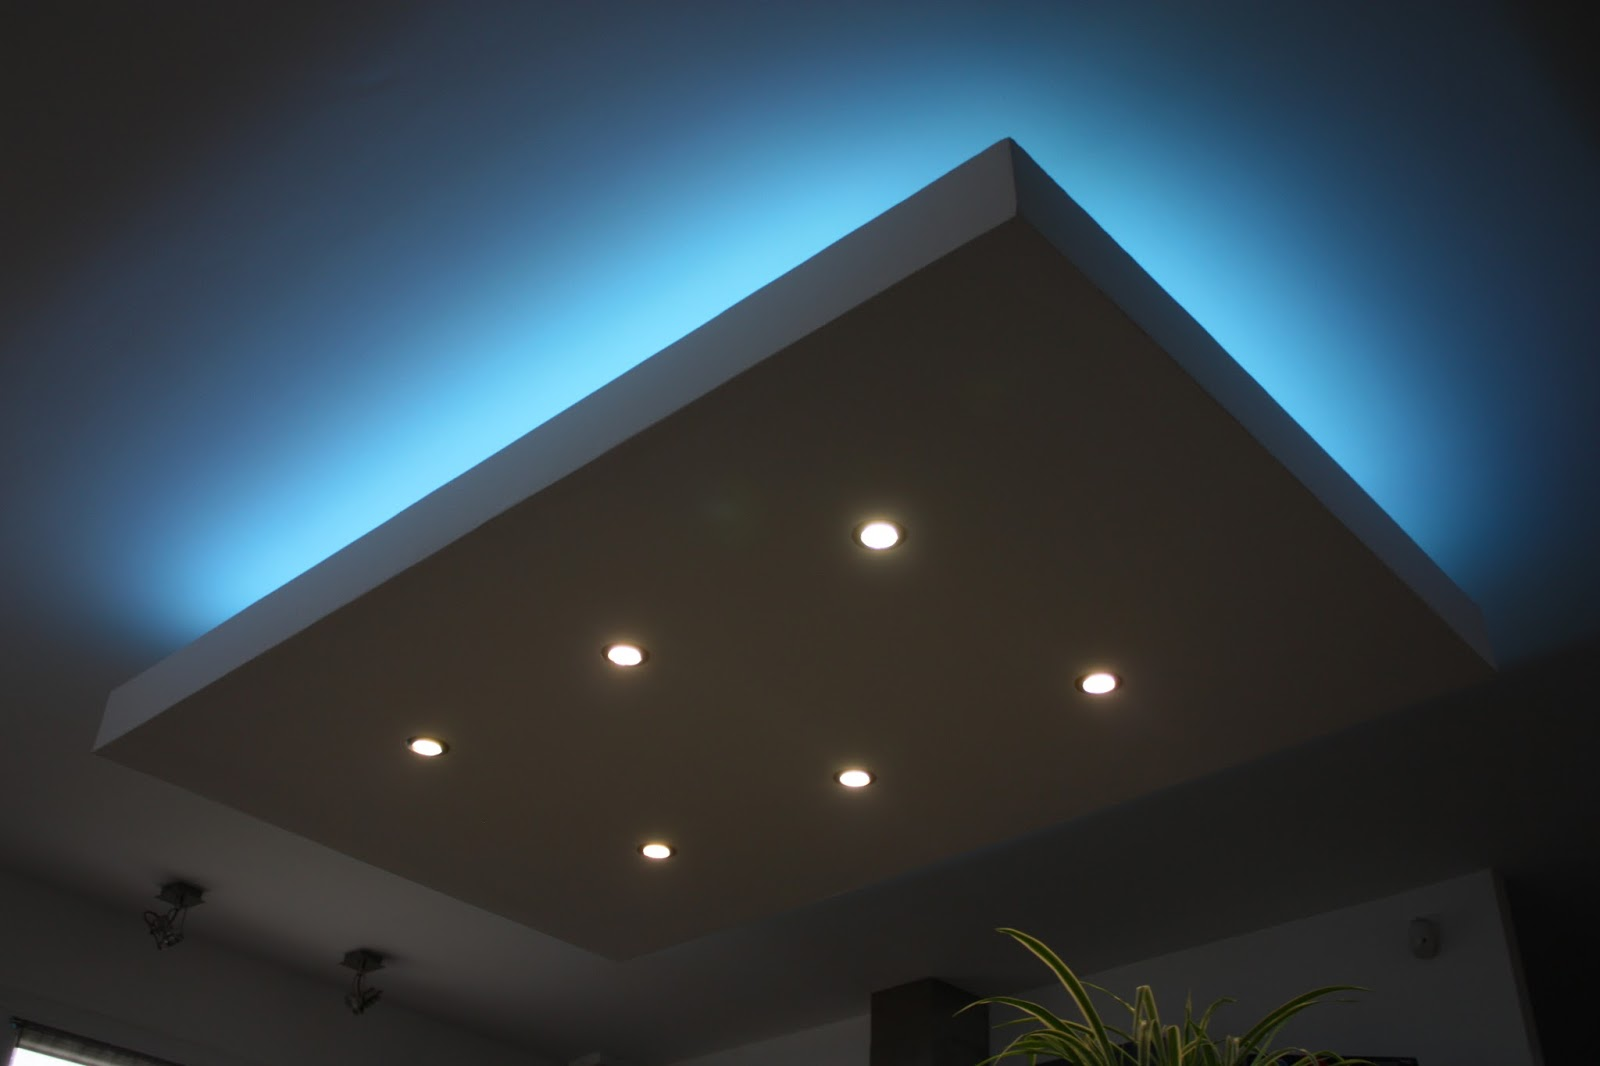 Eclairage led interieur plafond clairage led indirect 55 for Eclairage led interieur plafond